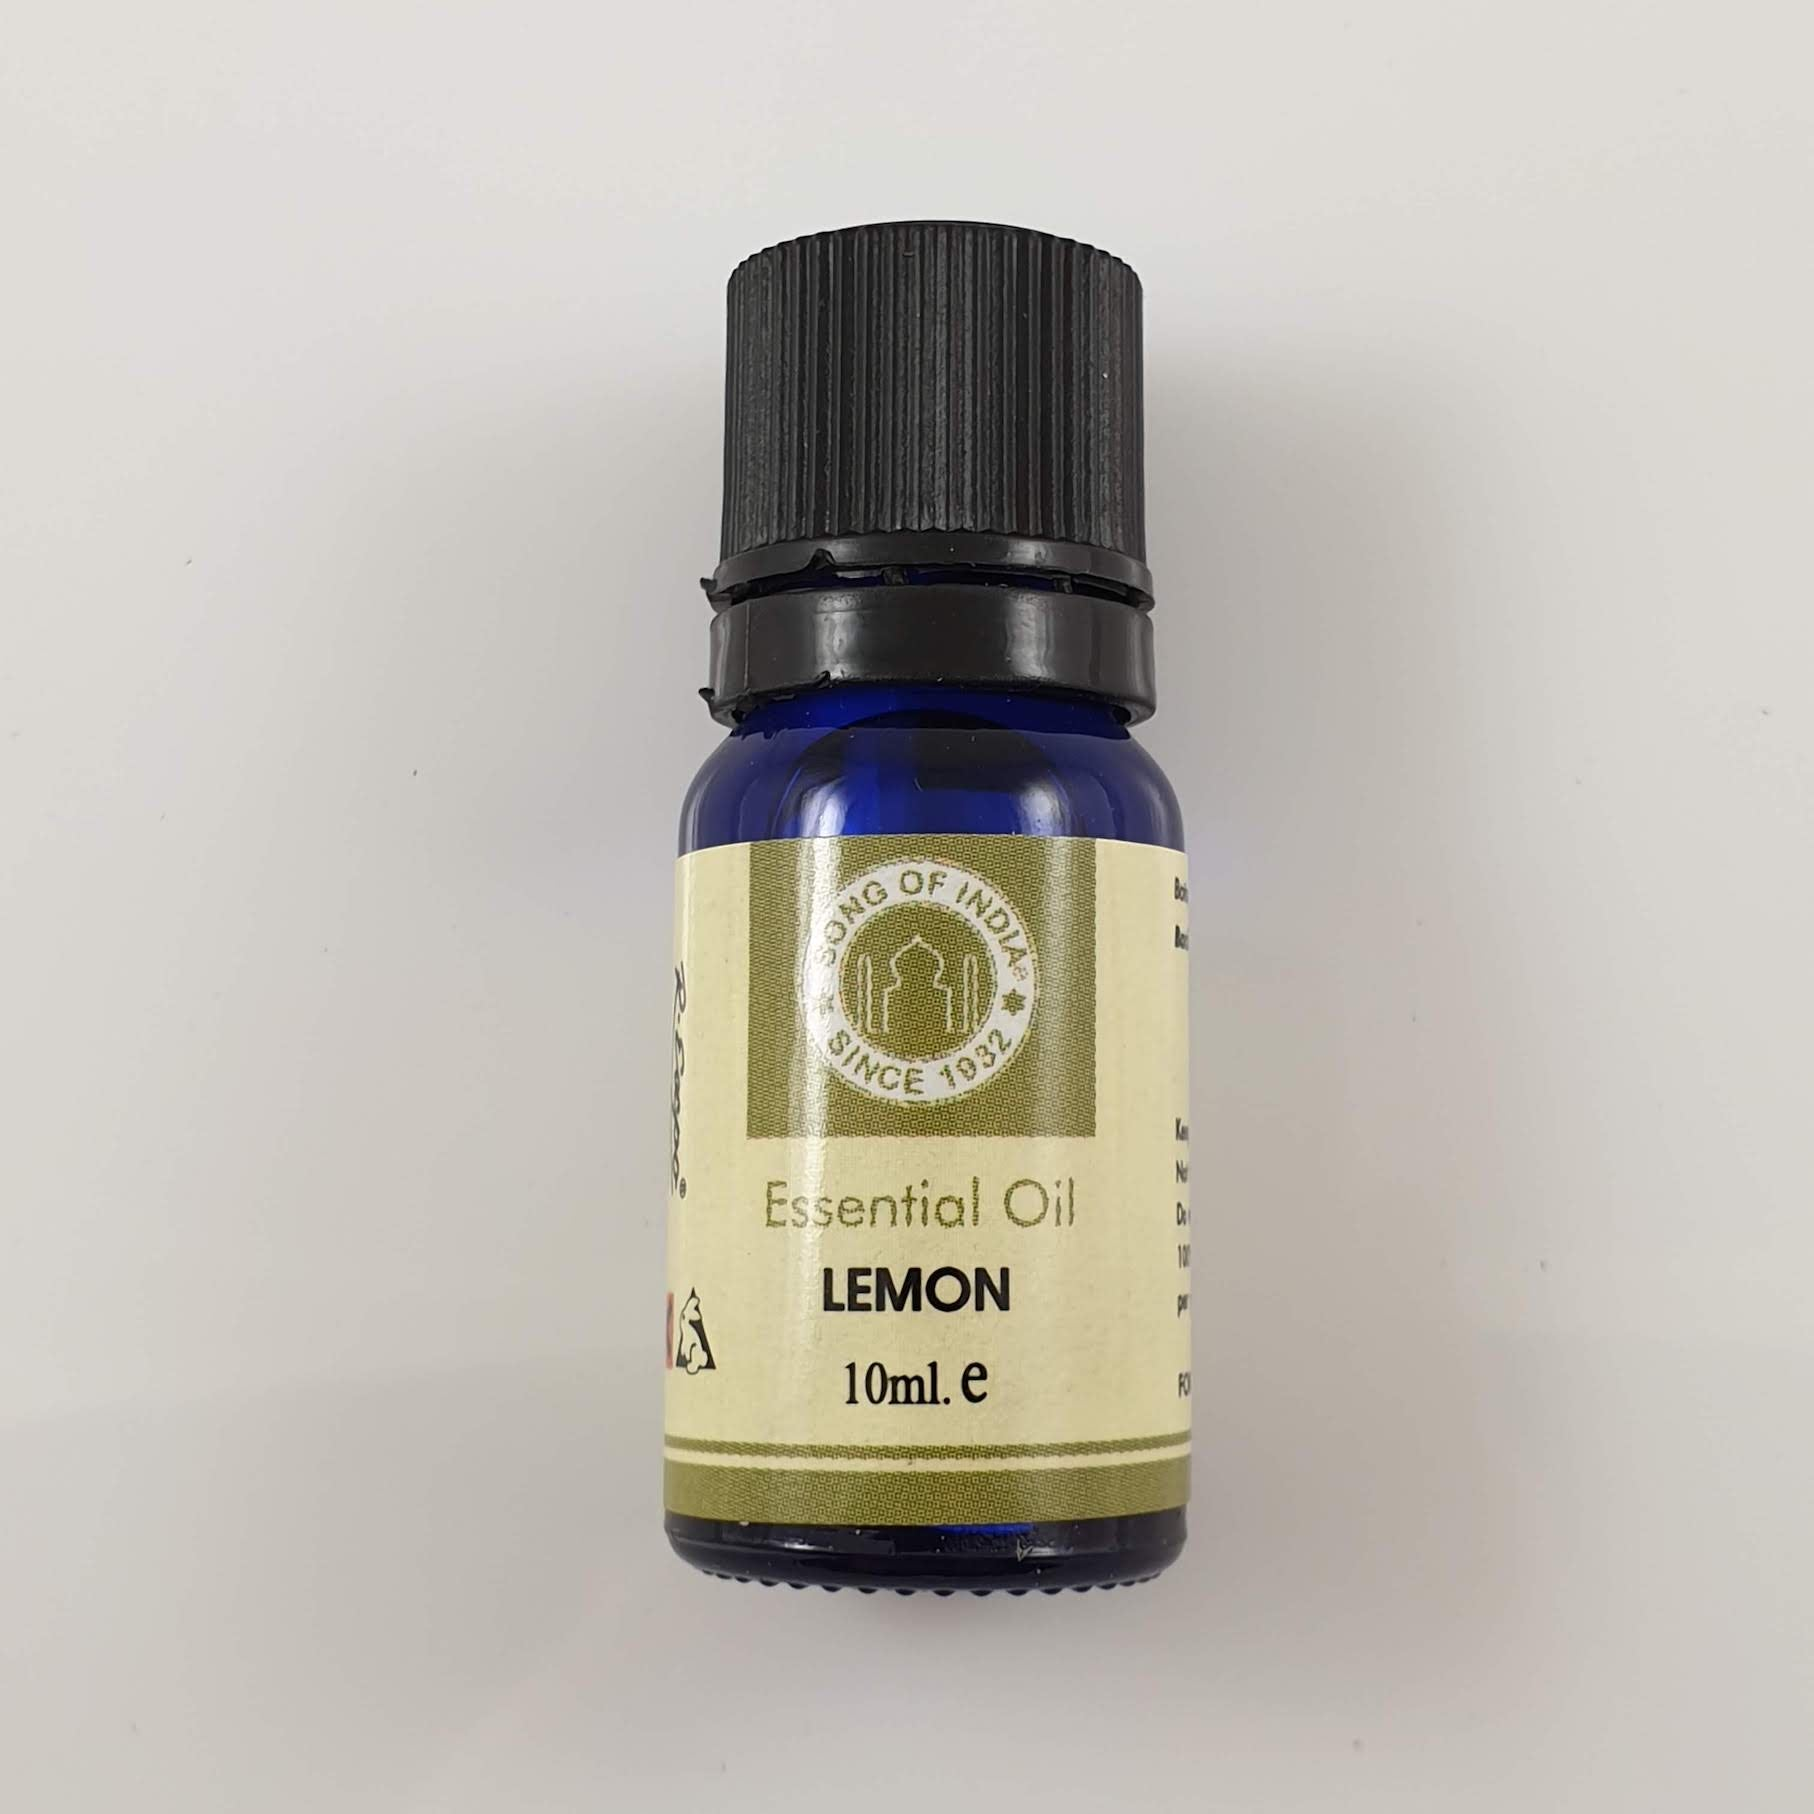 Song of India Essential Oil - Lemon 10ml - Rivendell Shop NZ